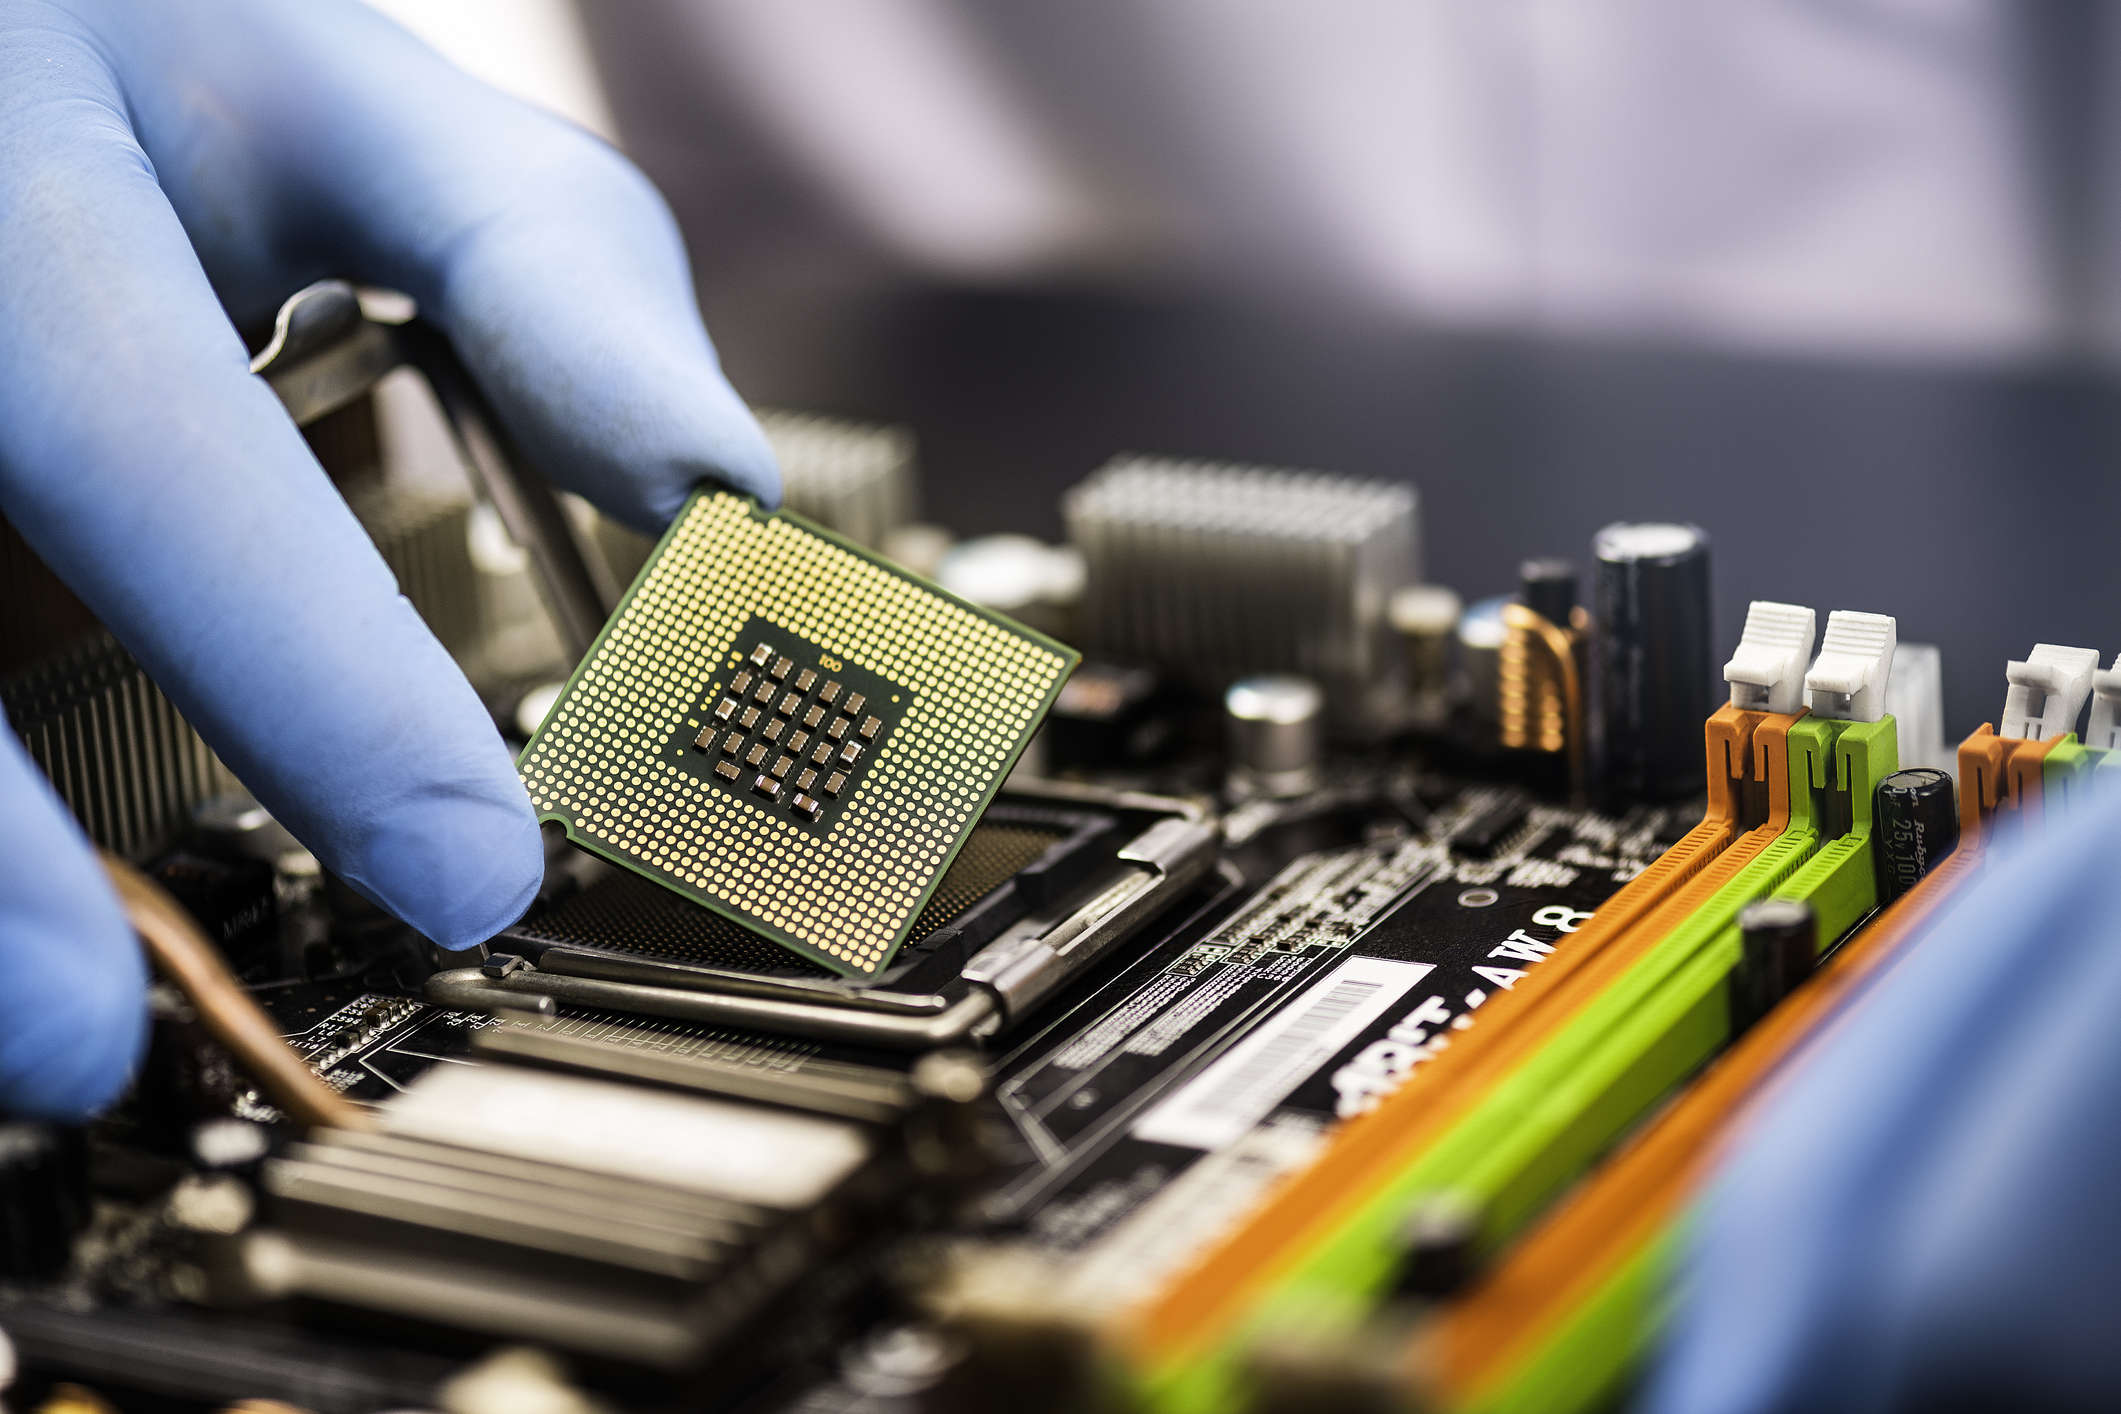 semiconductor industry: Why shortages of a $1 chip sparked crisis in the  global economy, Auto News, ET Auto